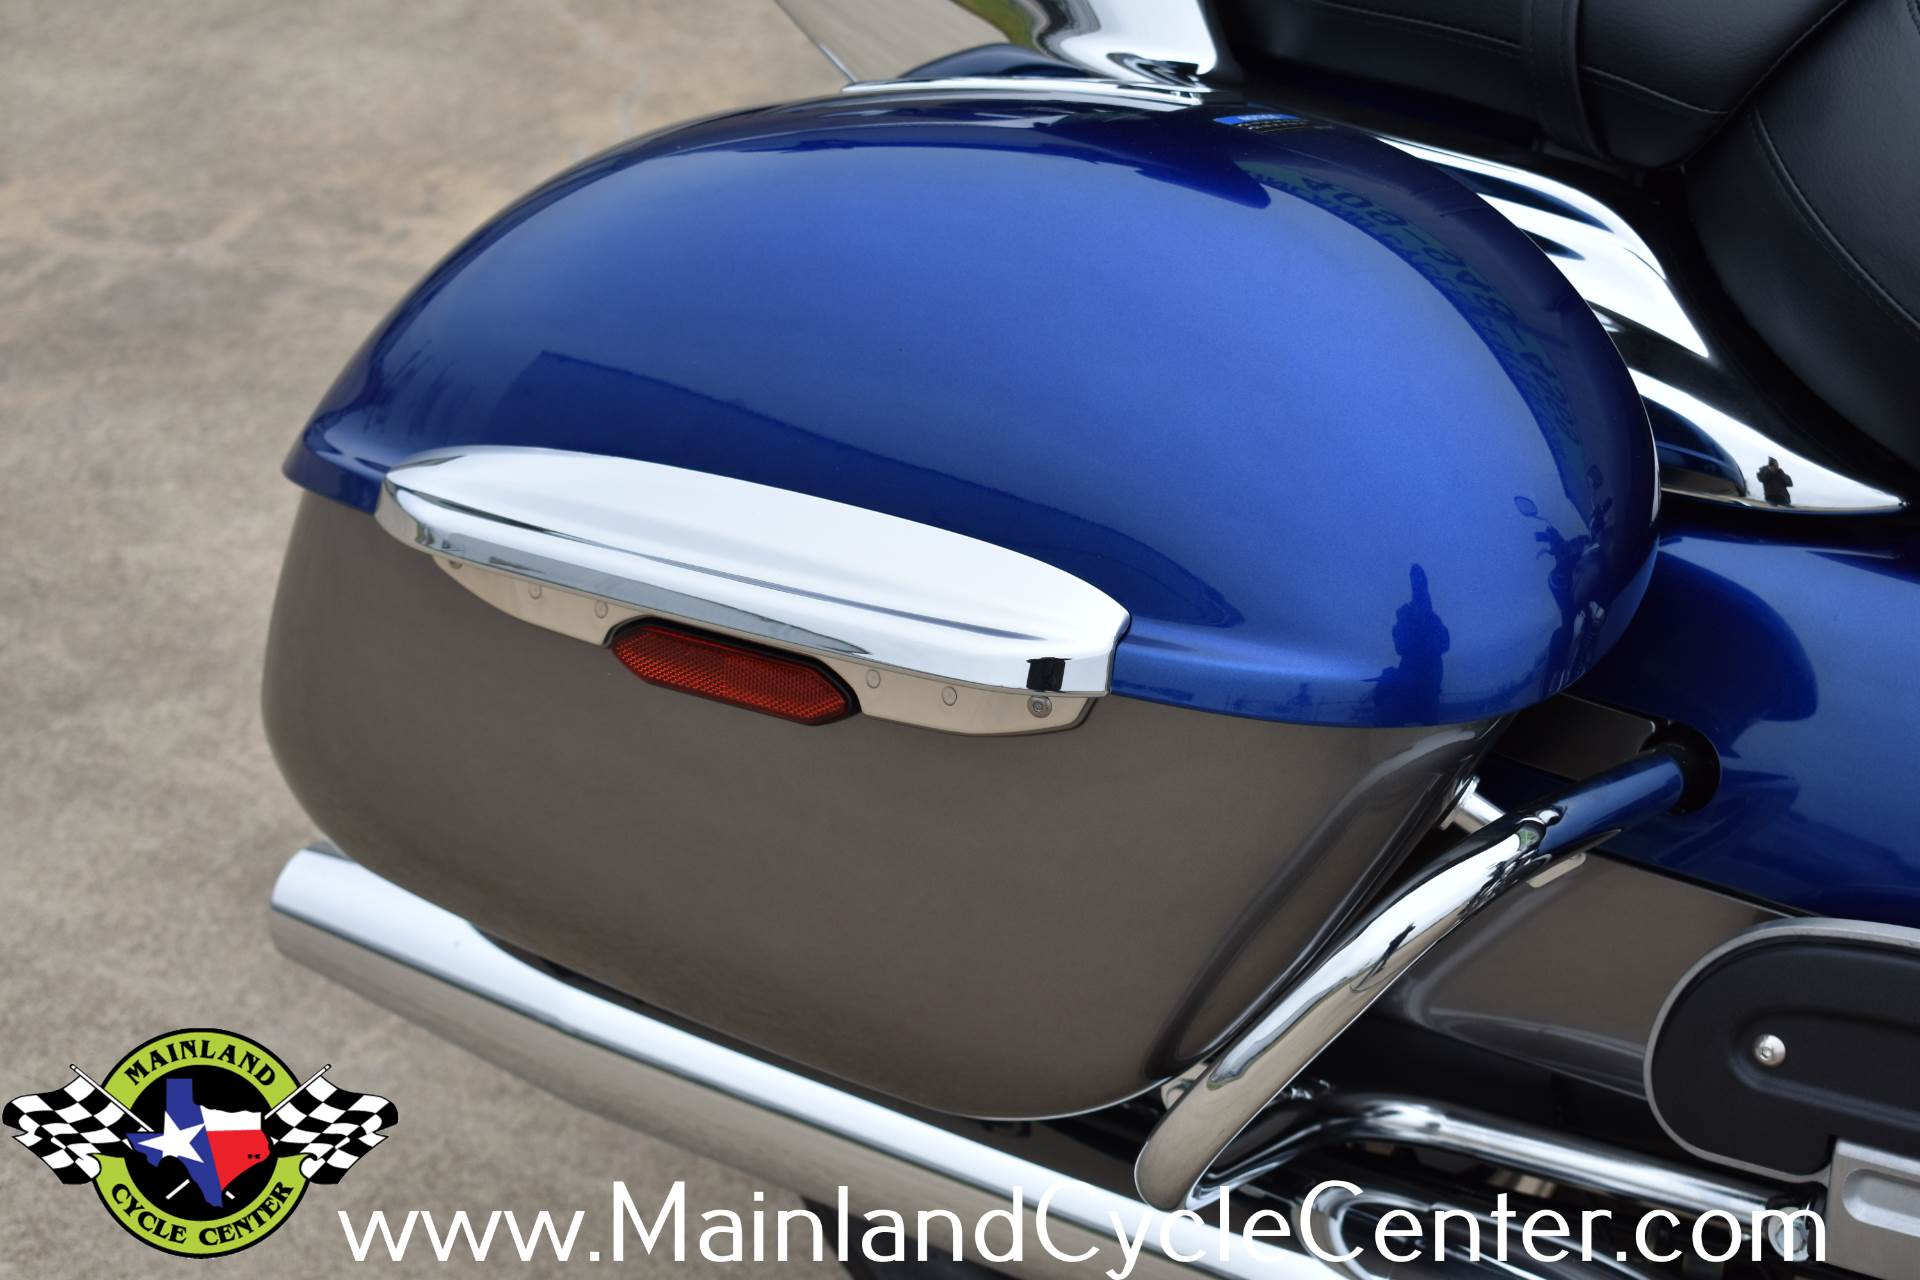 2019 Kawasaki Vulcan 1700 Voyager ABS in La Marque, Texas - Photo 12